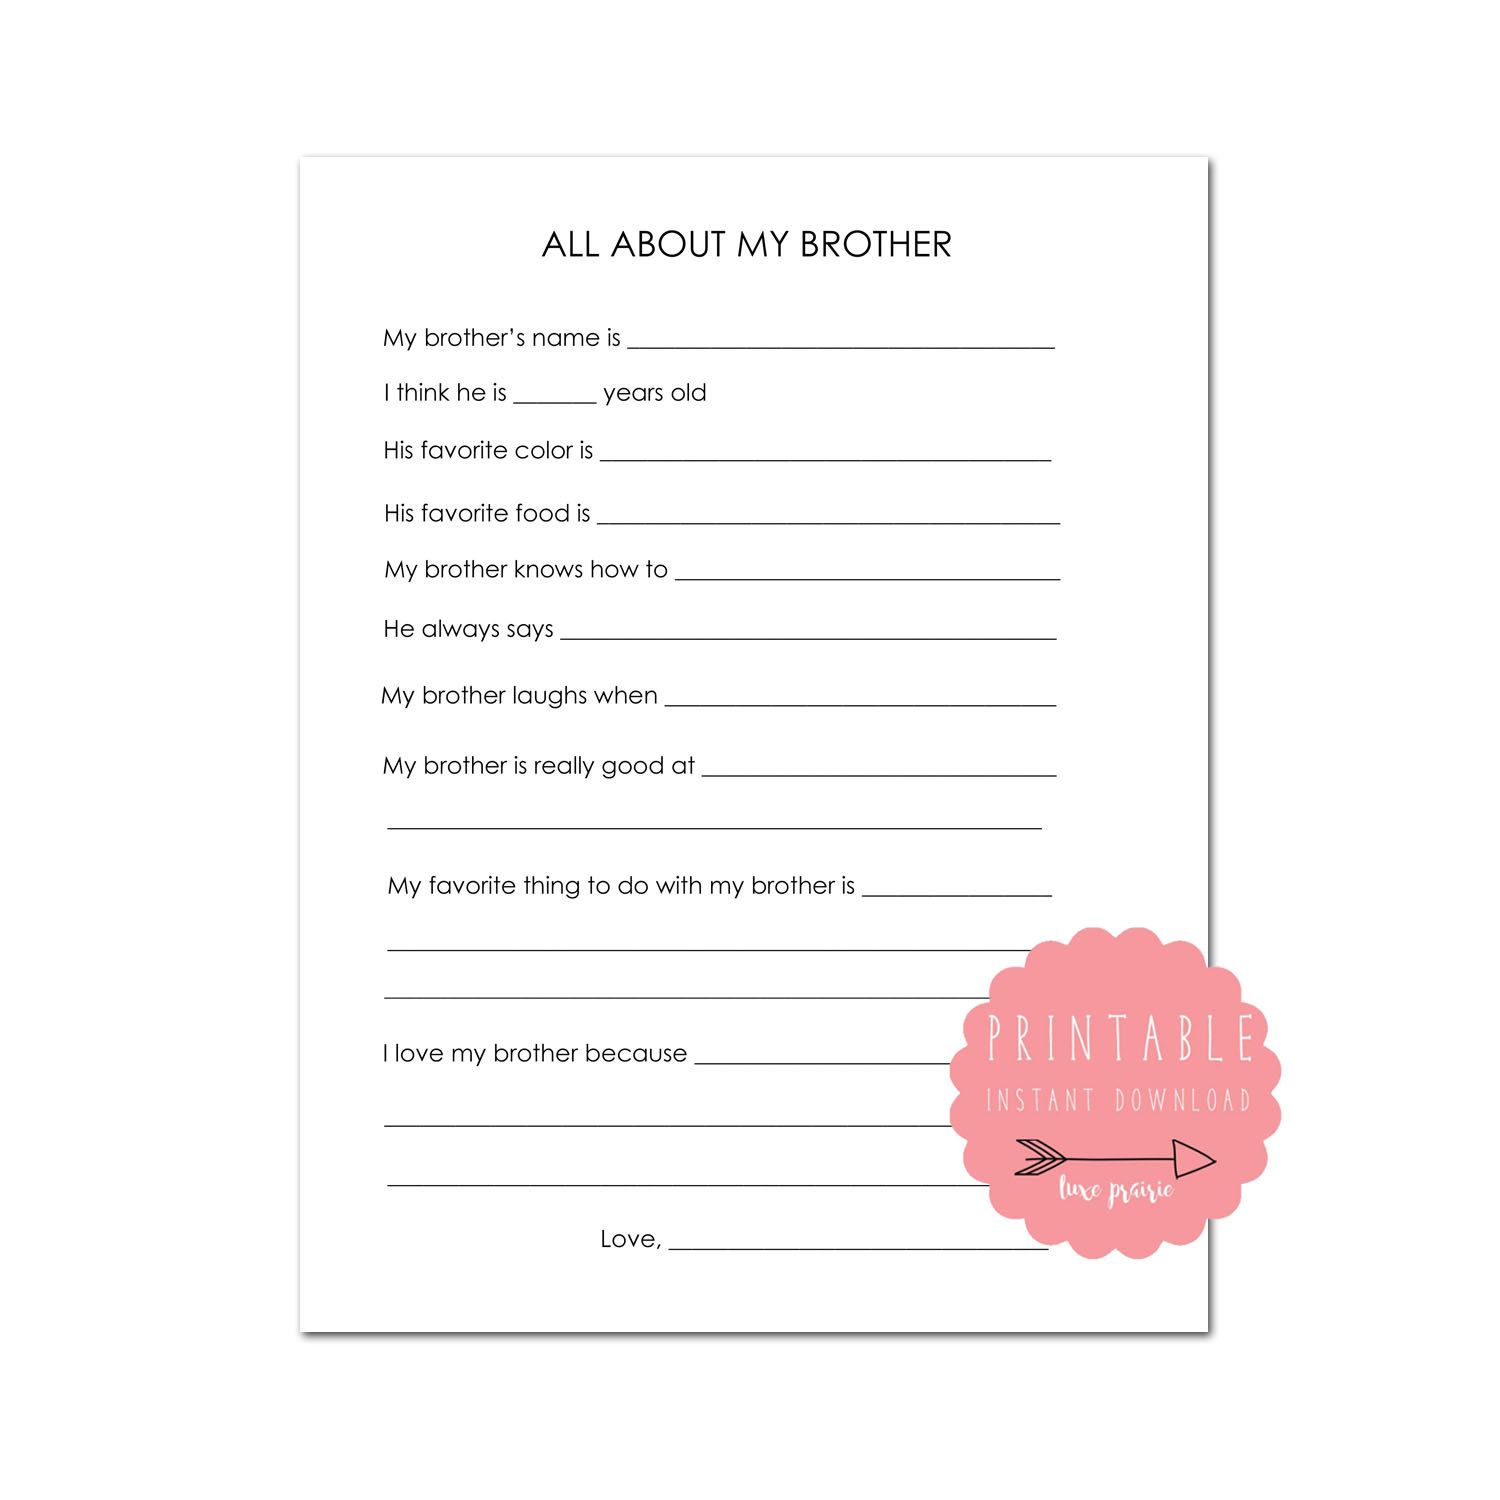 All About My Brother Printable About My Brother T